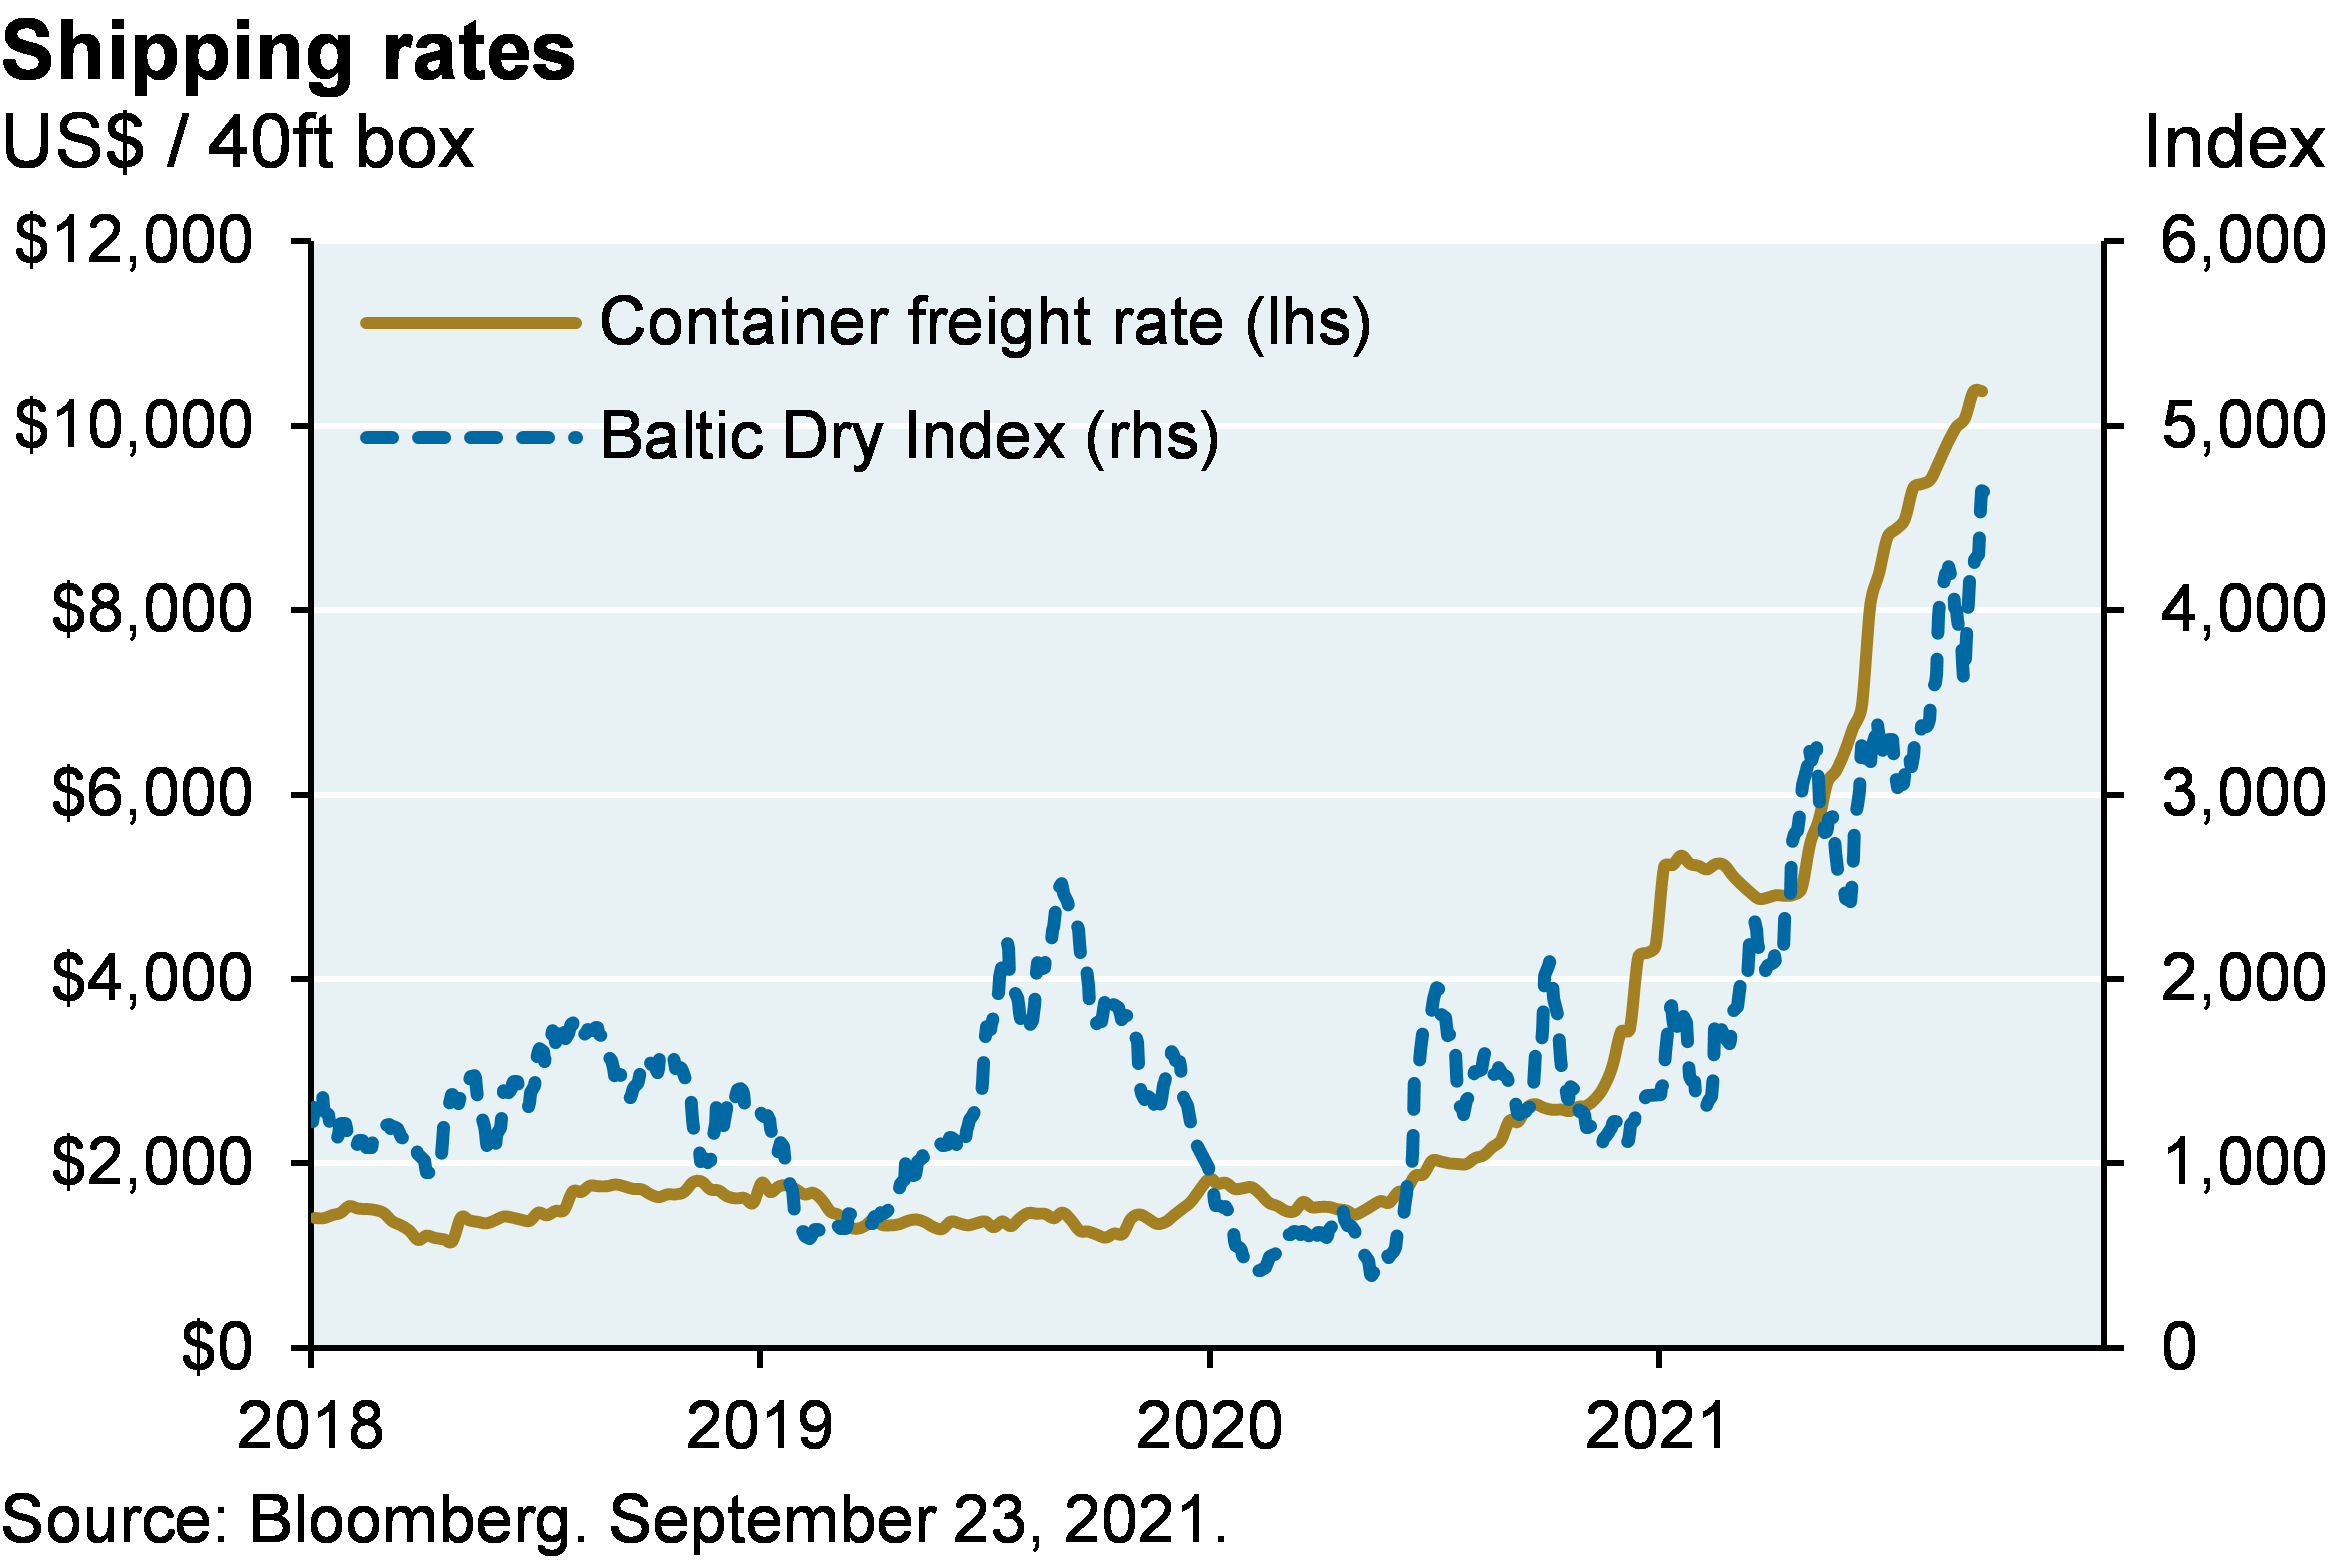 Line chart shows the container freight rate shown in US dollars per 40ft box and shows the Baltic Dry Index since 2018. The container freight rate has steadily been rising since January 2019, to its highest point of over $10,000 in September. The Baltic Dry Index remained at a level of 1000-2000 until recently, when it spiked to above 4,000, the highest level since 2010.